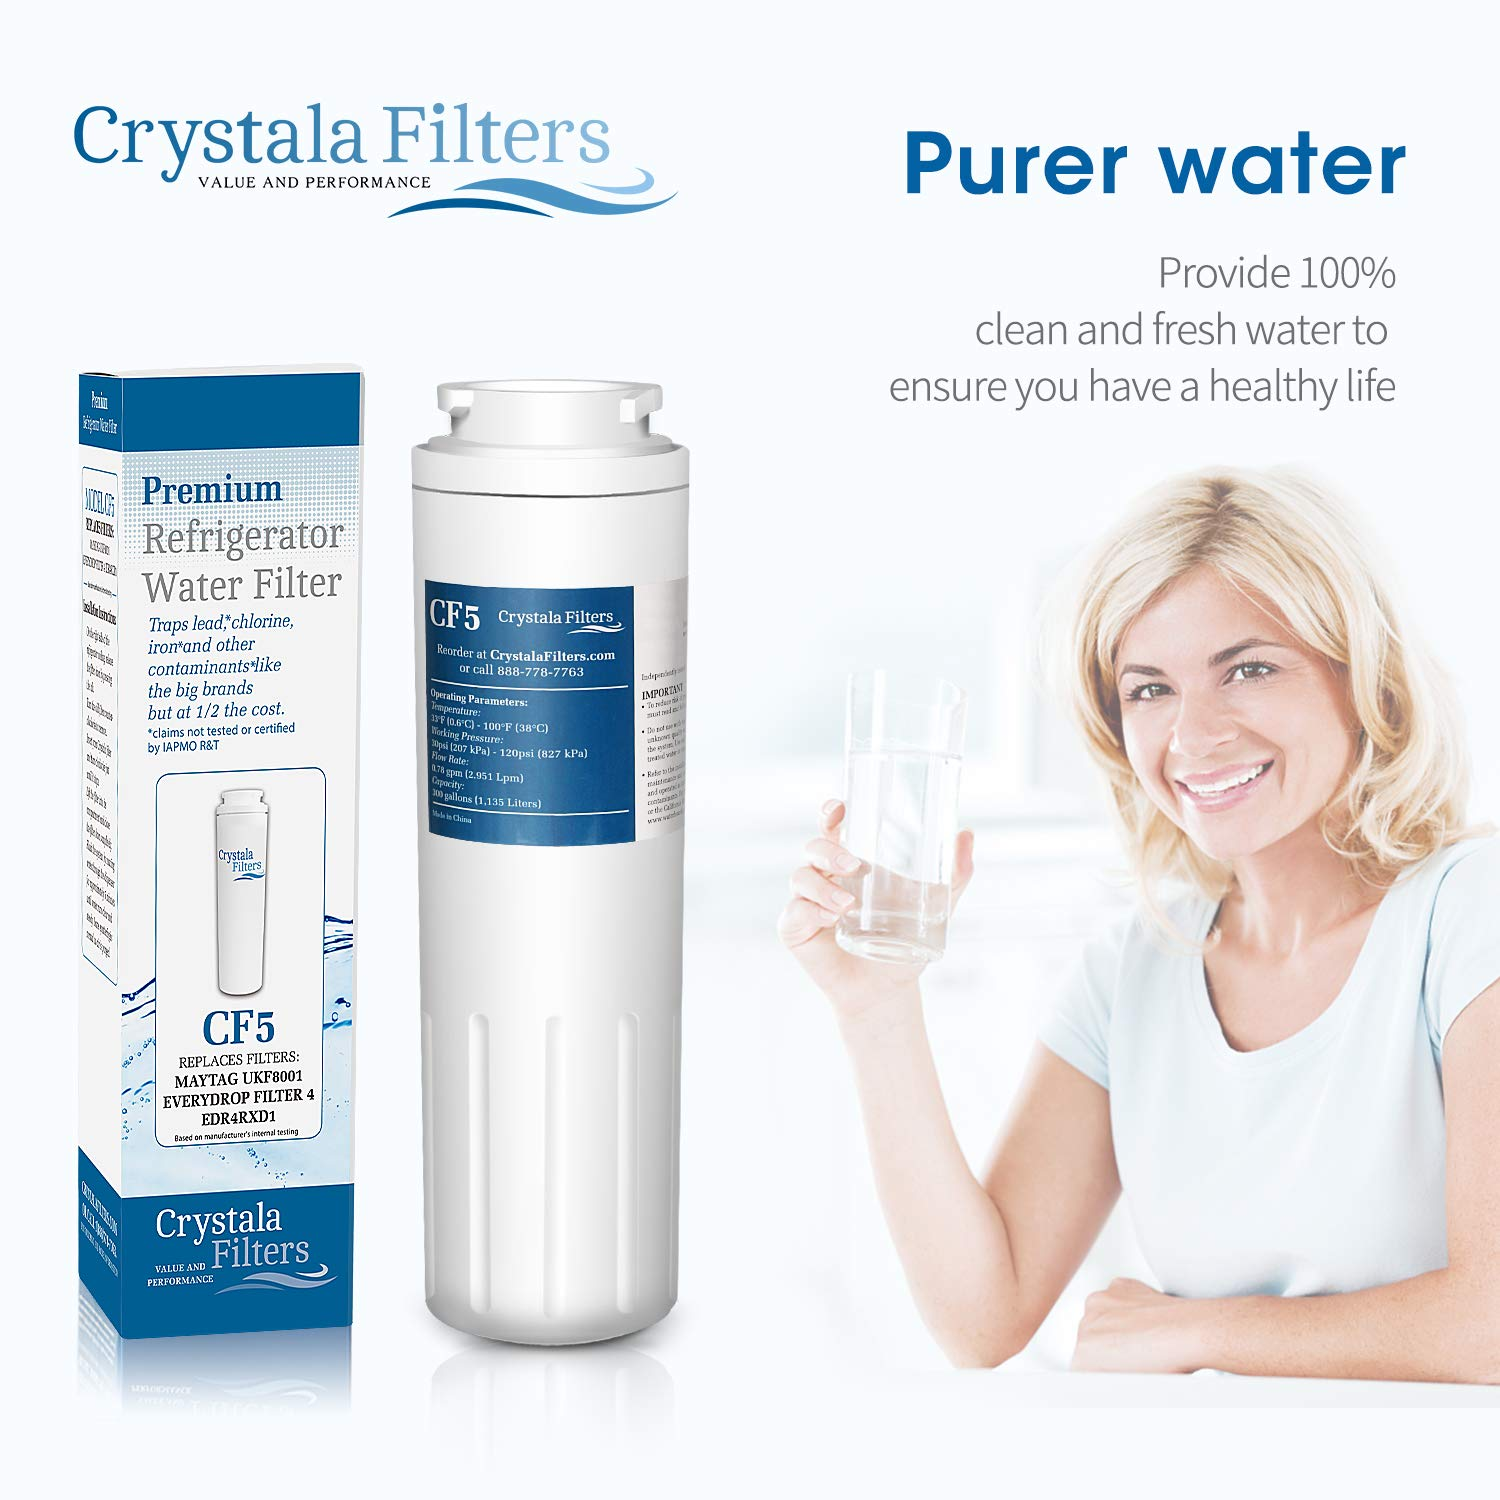 pur refrigerator water filter 4 ukf8001